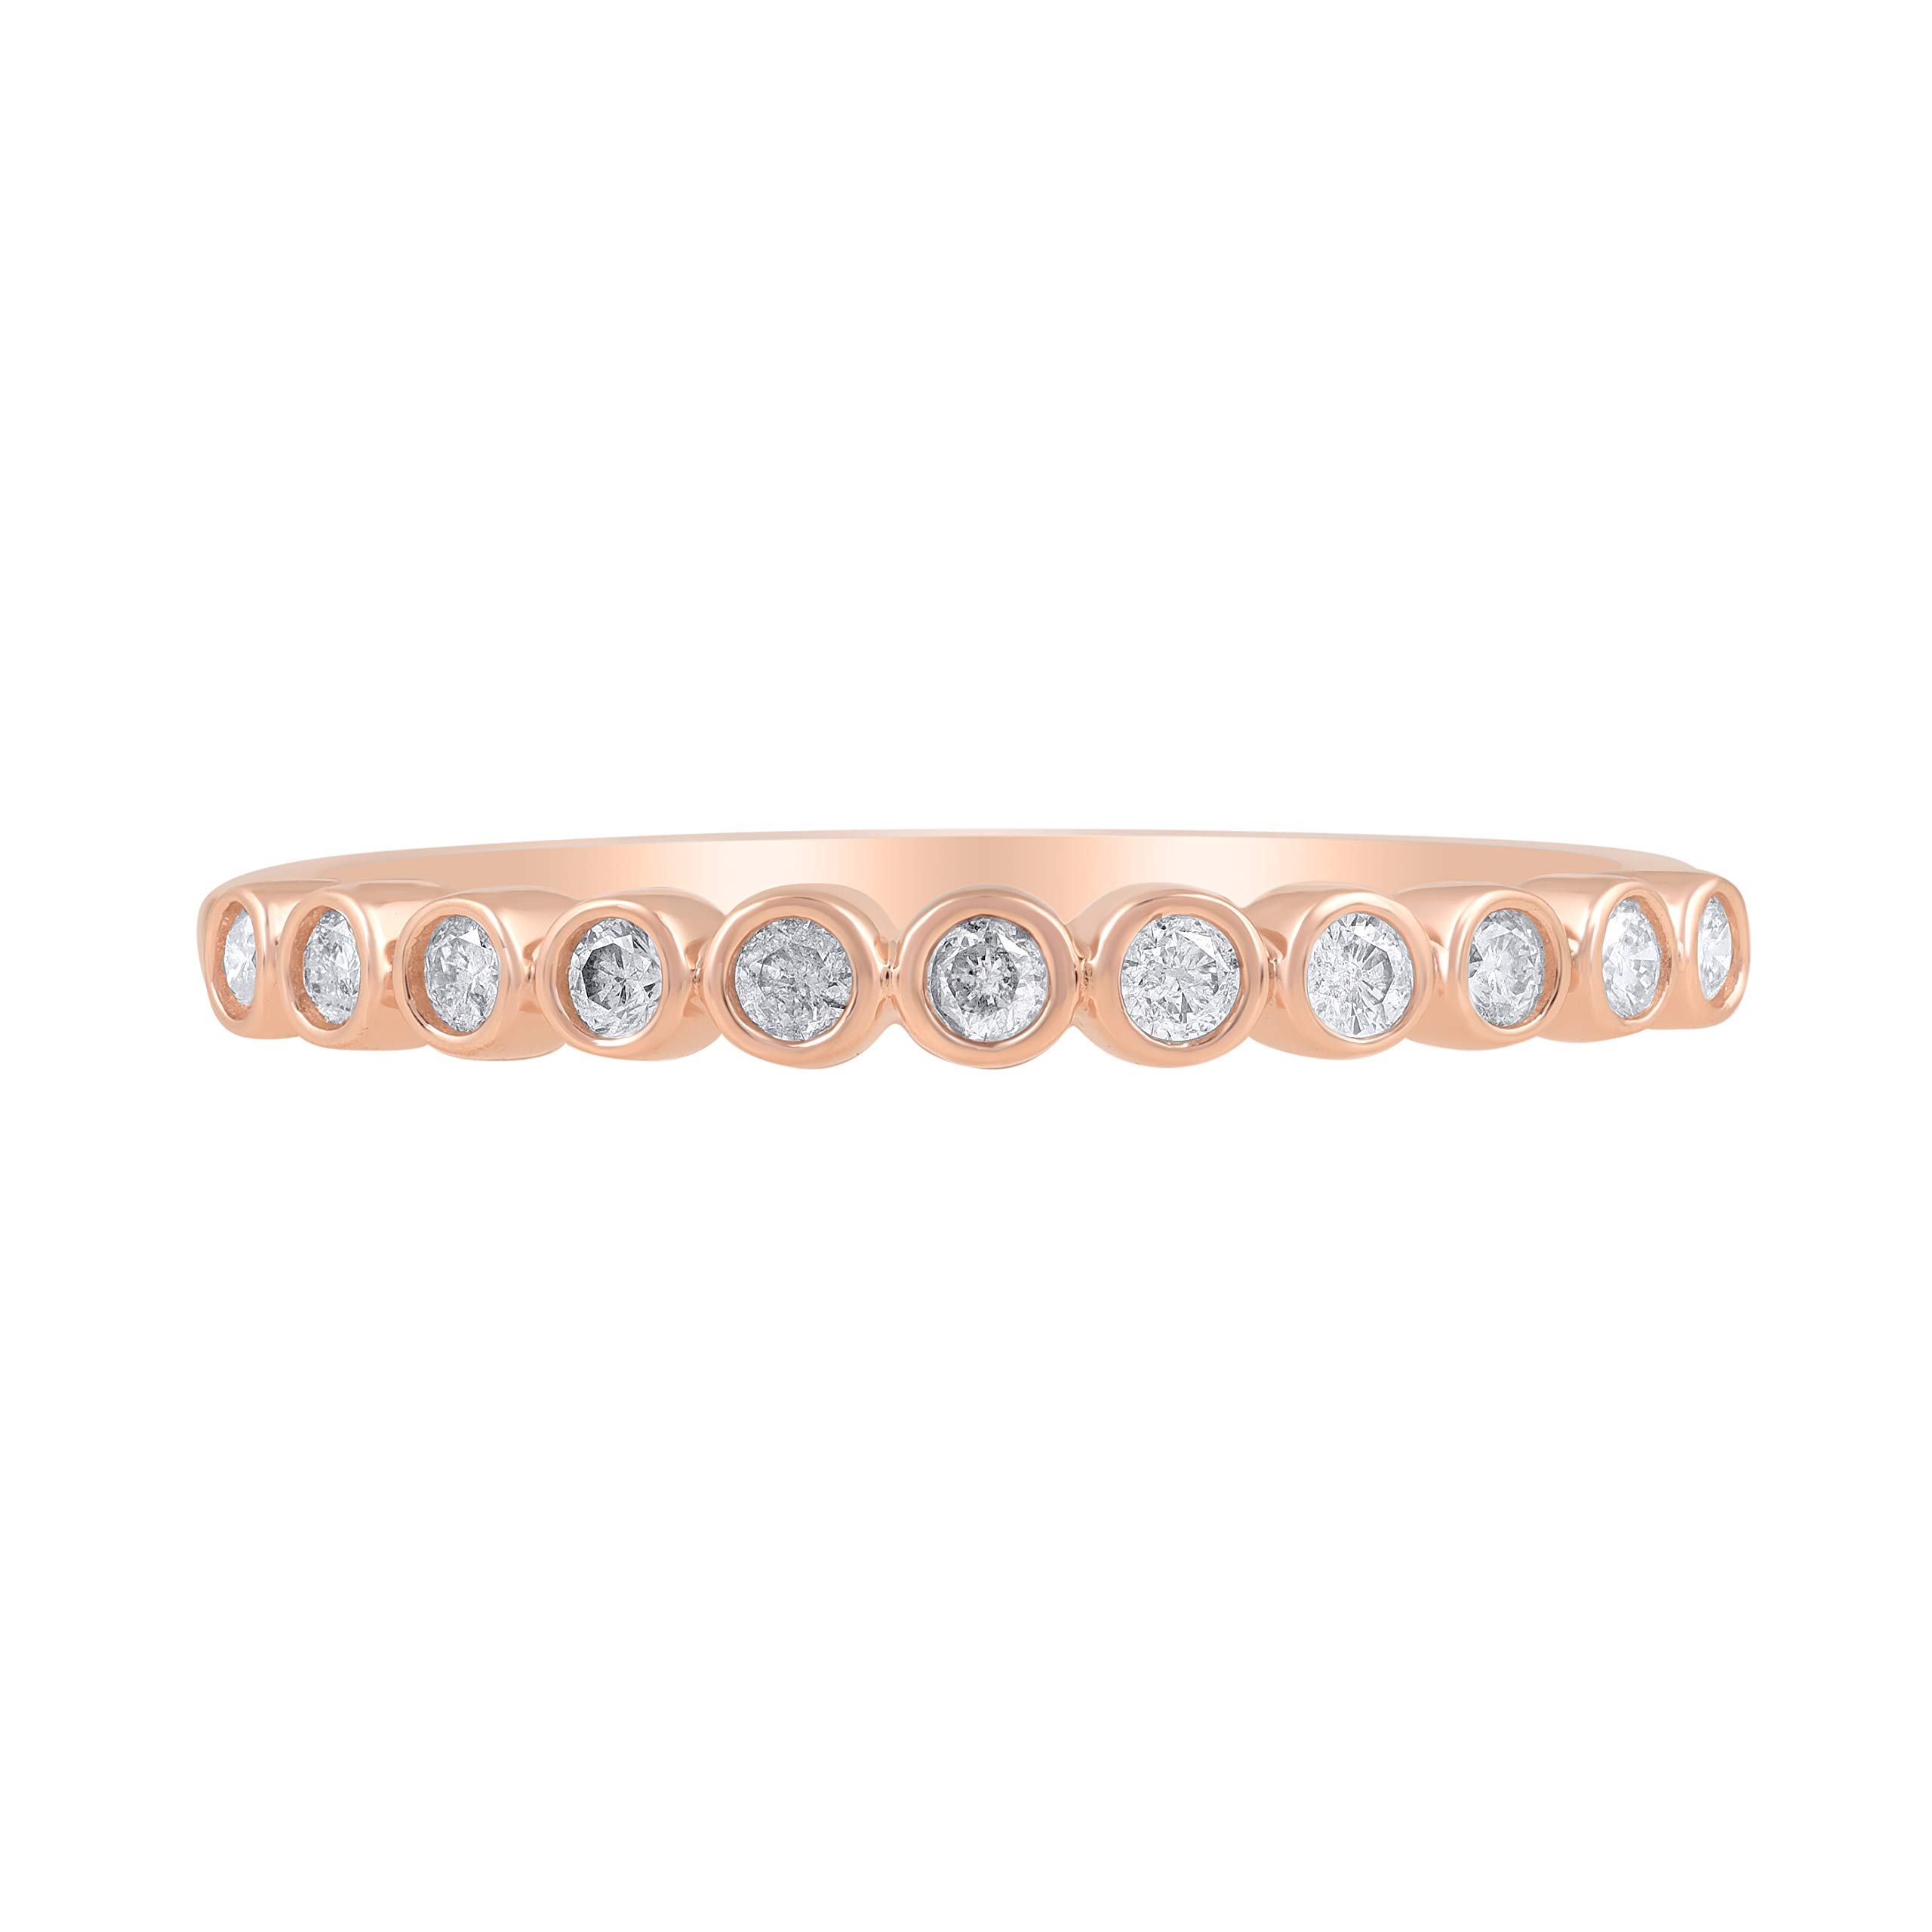 1/5 Carat Natural Diamond Band 14K Rose Gold (H-I Color, I2 Clarity) Diamond Band for Women Diamond Jewelry Gifts for Women, US Size 6